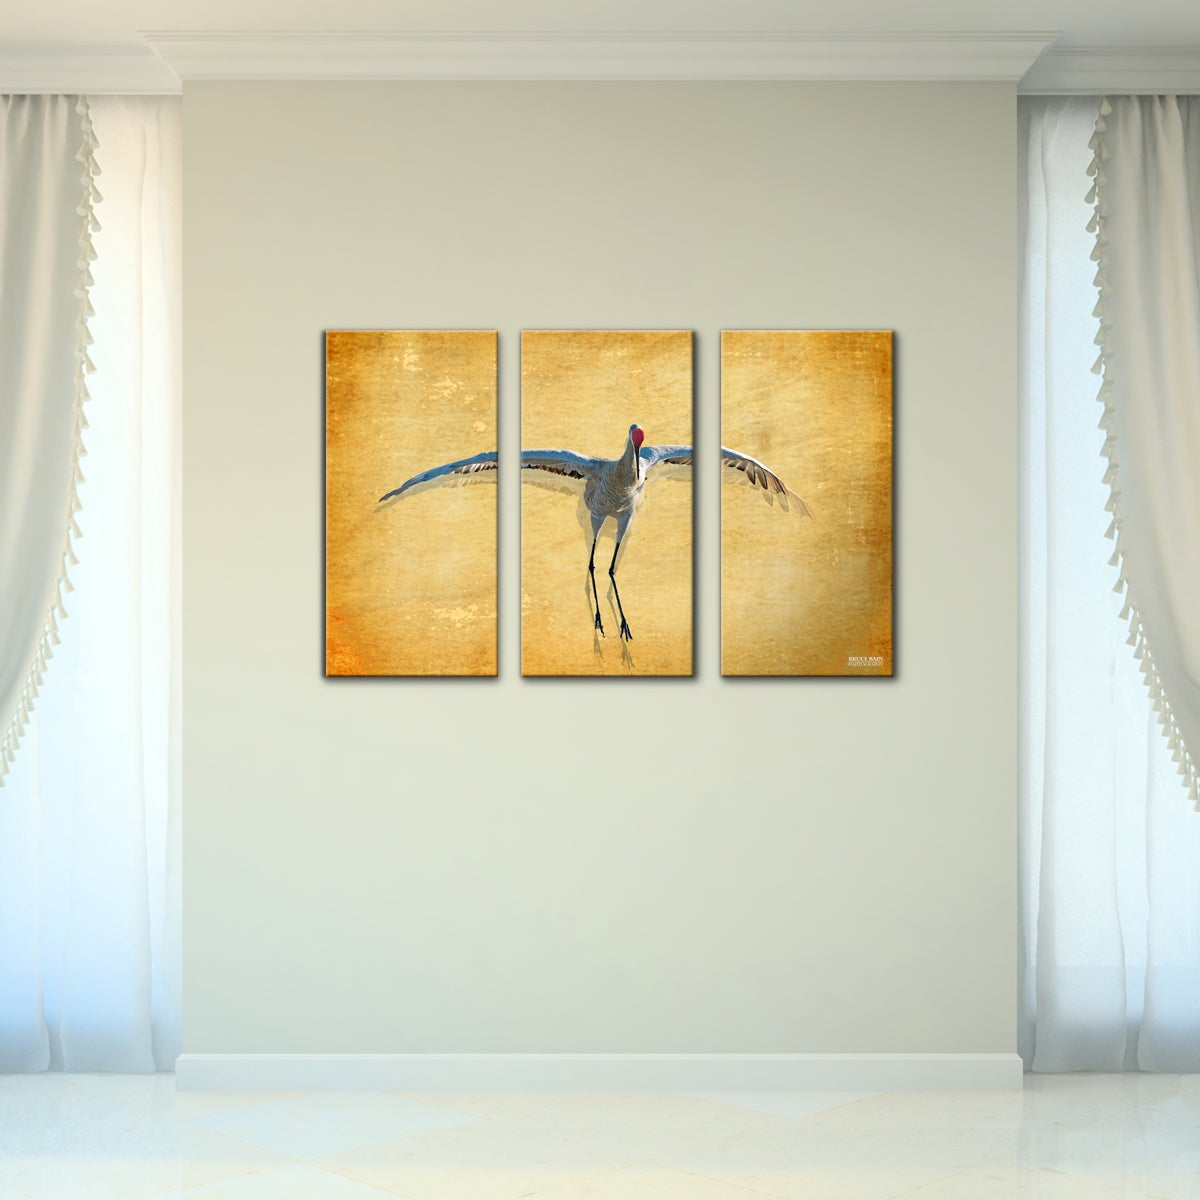 Bruce Bain \'Dancing Bird\' 3-piece Set Canvas Wall Art - Free ...